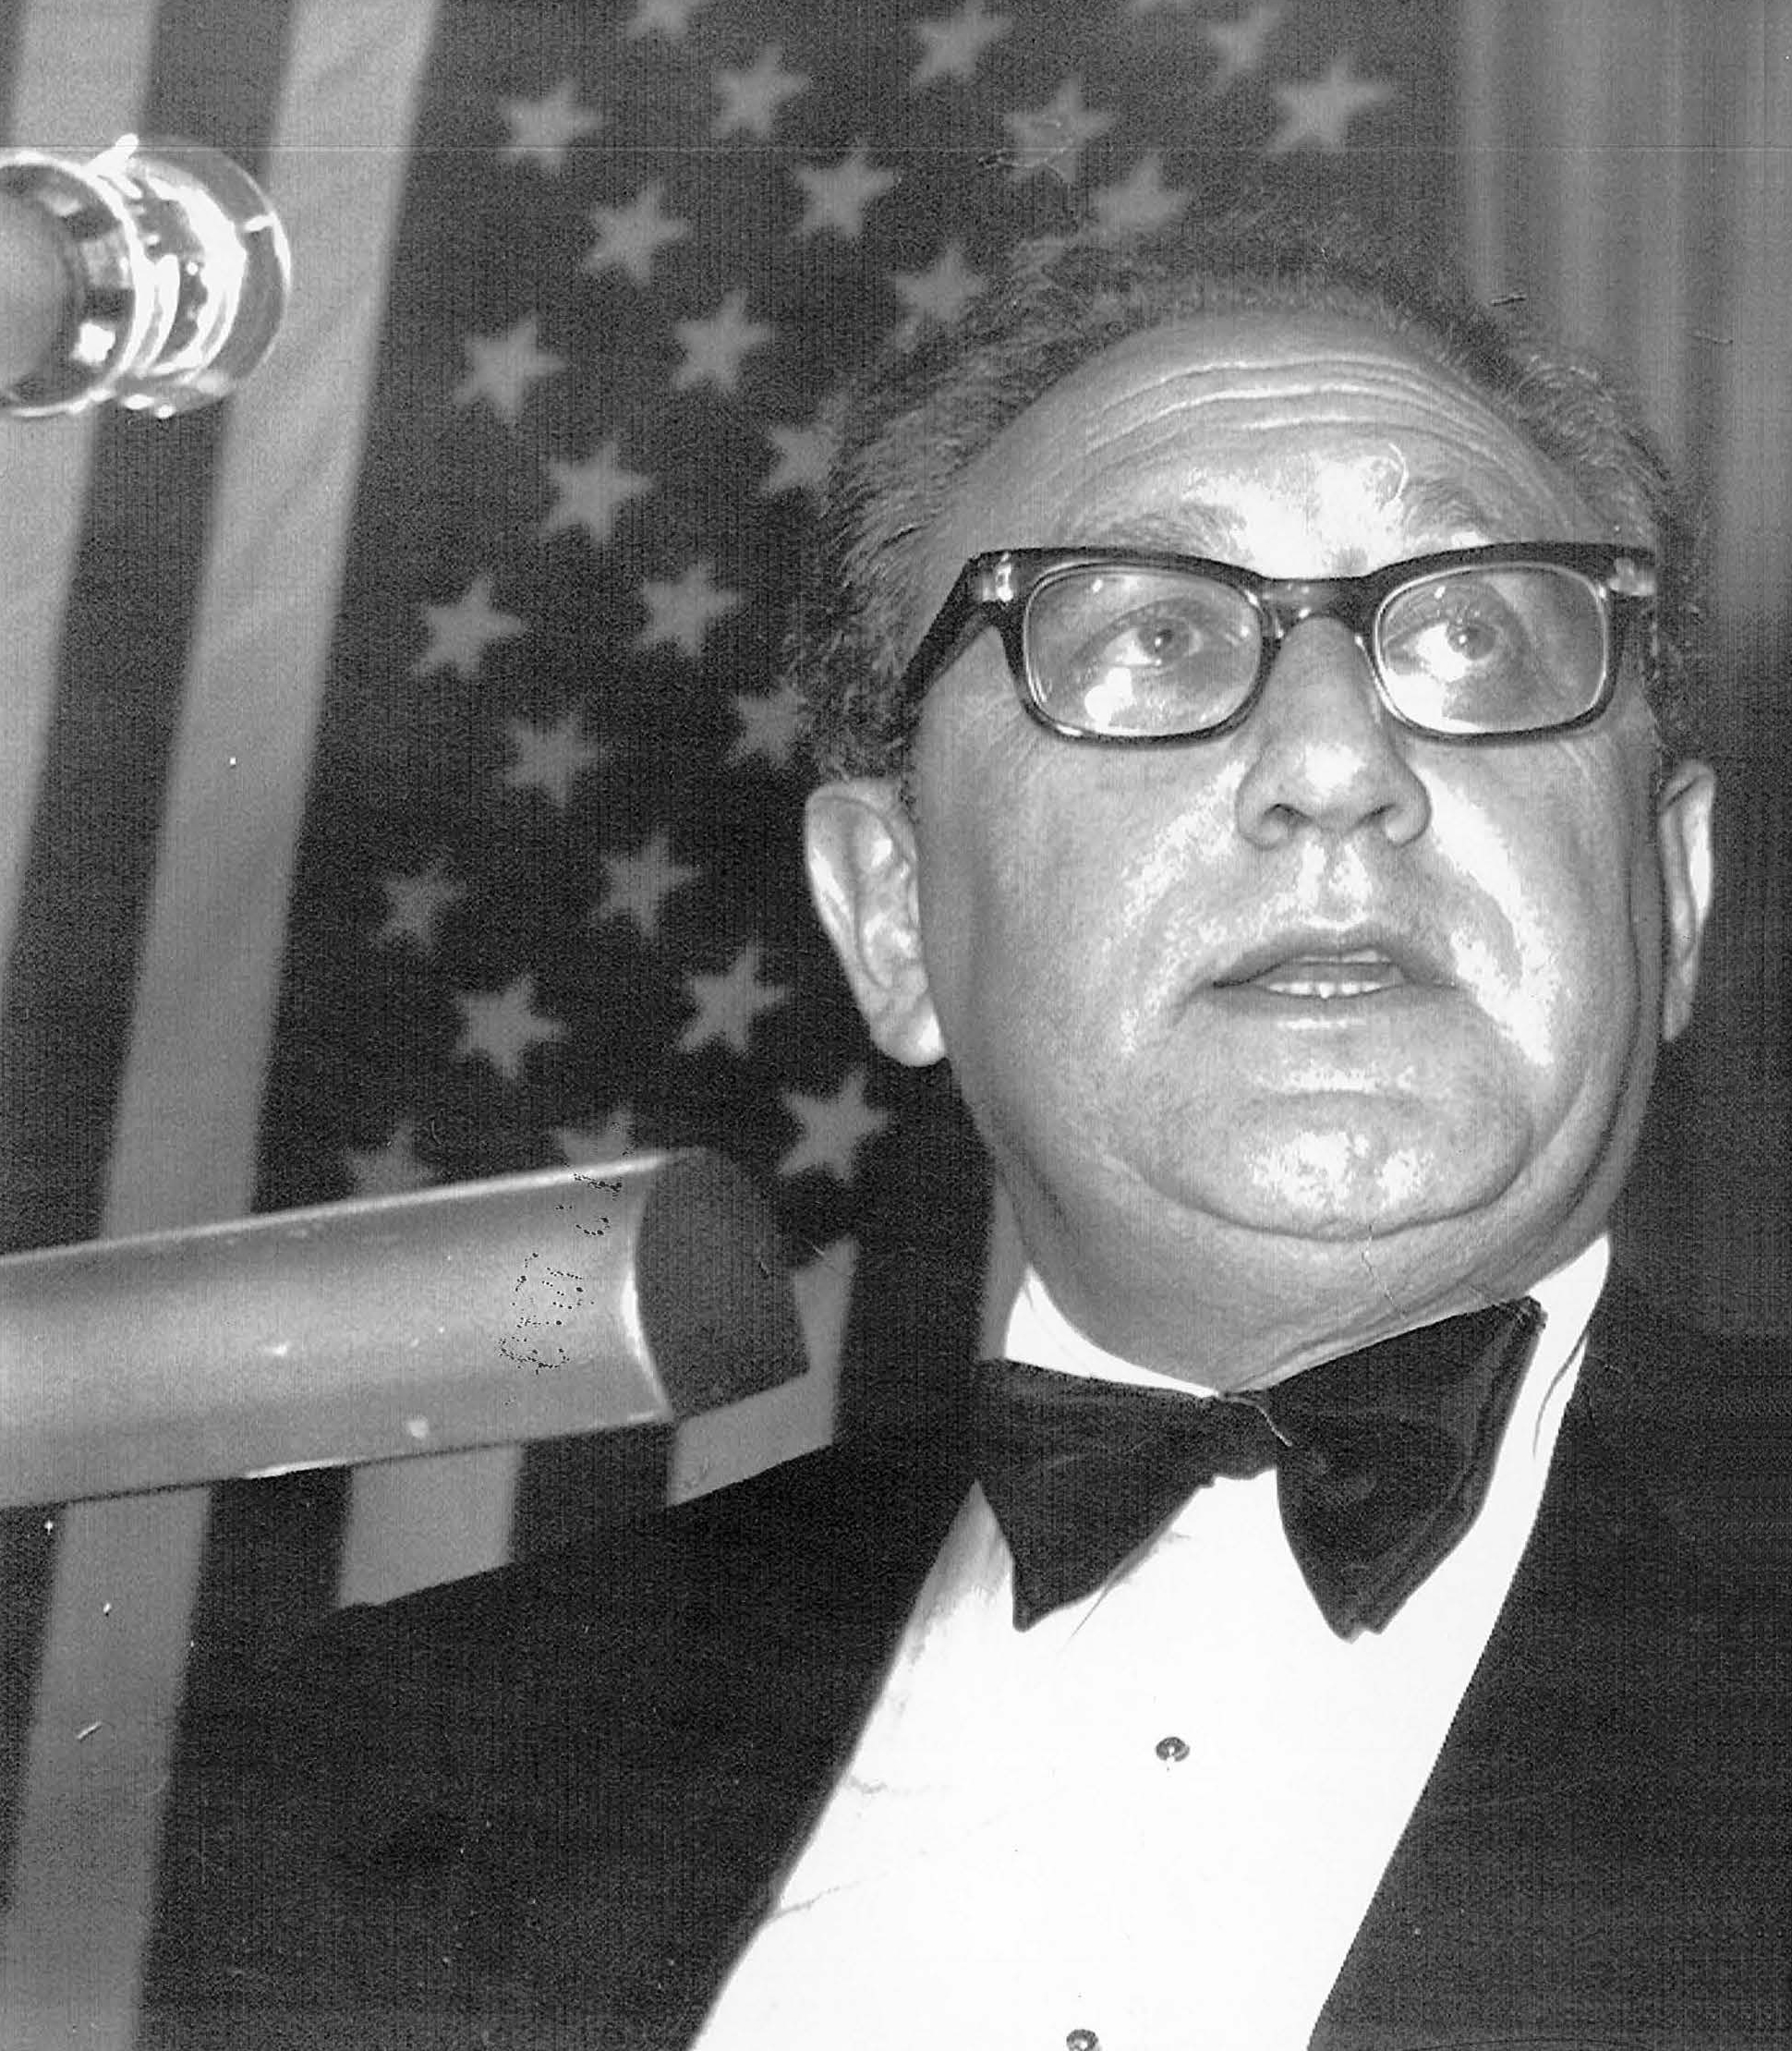 Henry A. Kissinger. (Dec. 12, 1973). PHOTO 1: U.S. Secretary of State delivers major oil crisis speech to the Pilgrims Society at the London Europa Hotel. AP Wirephoto.